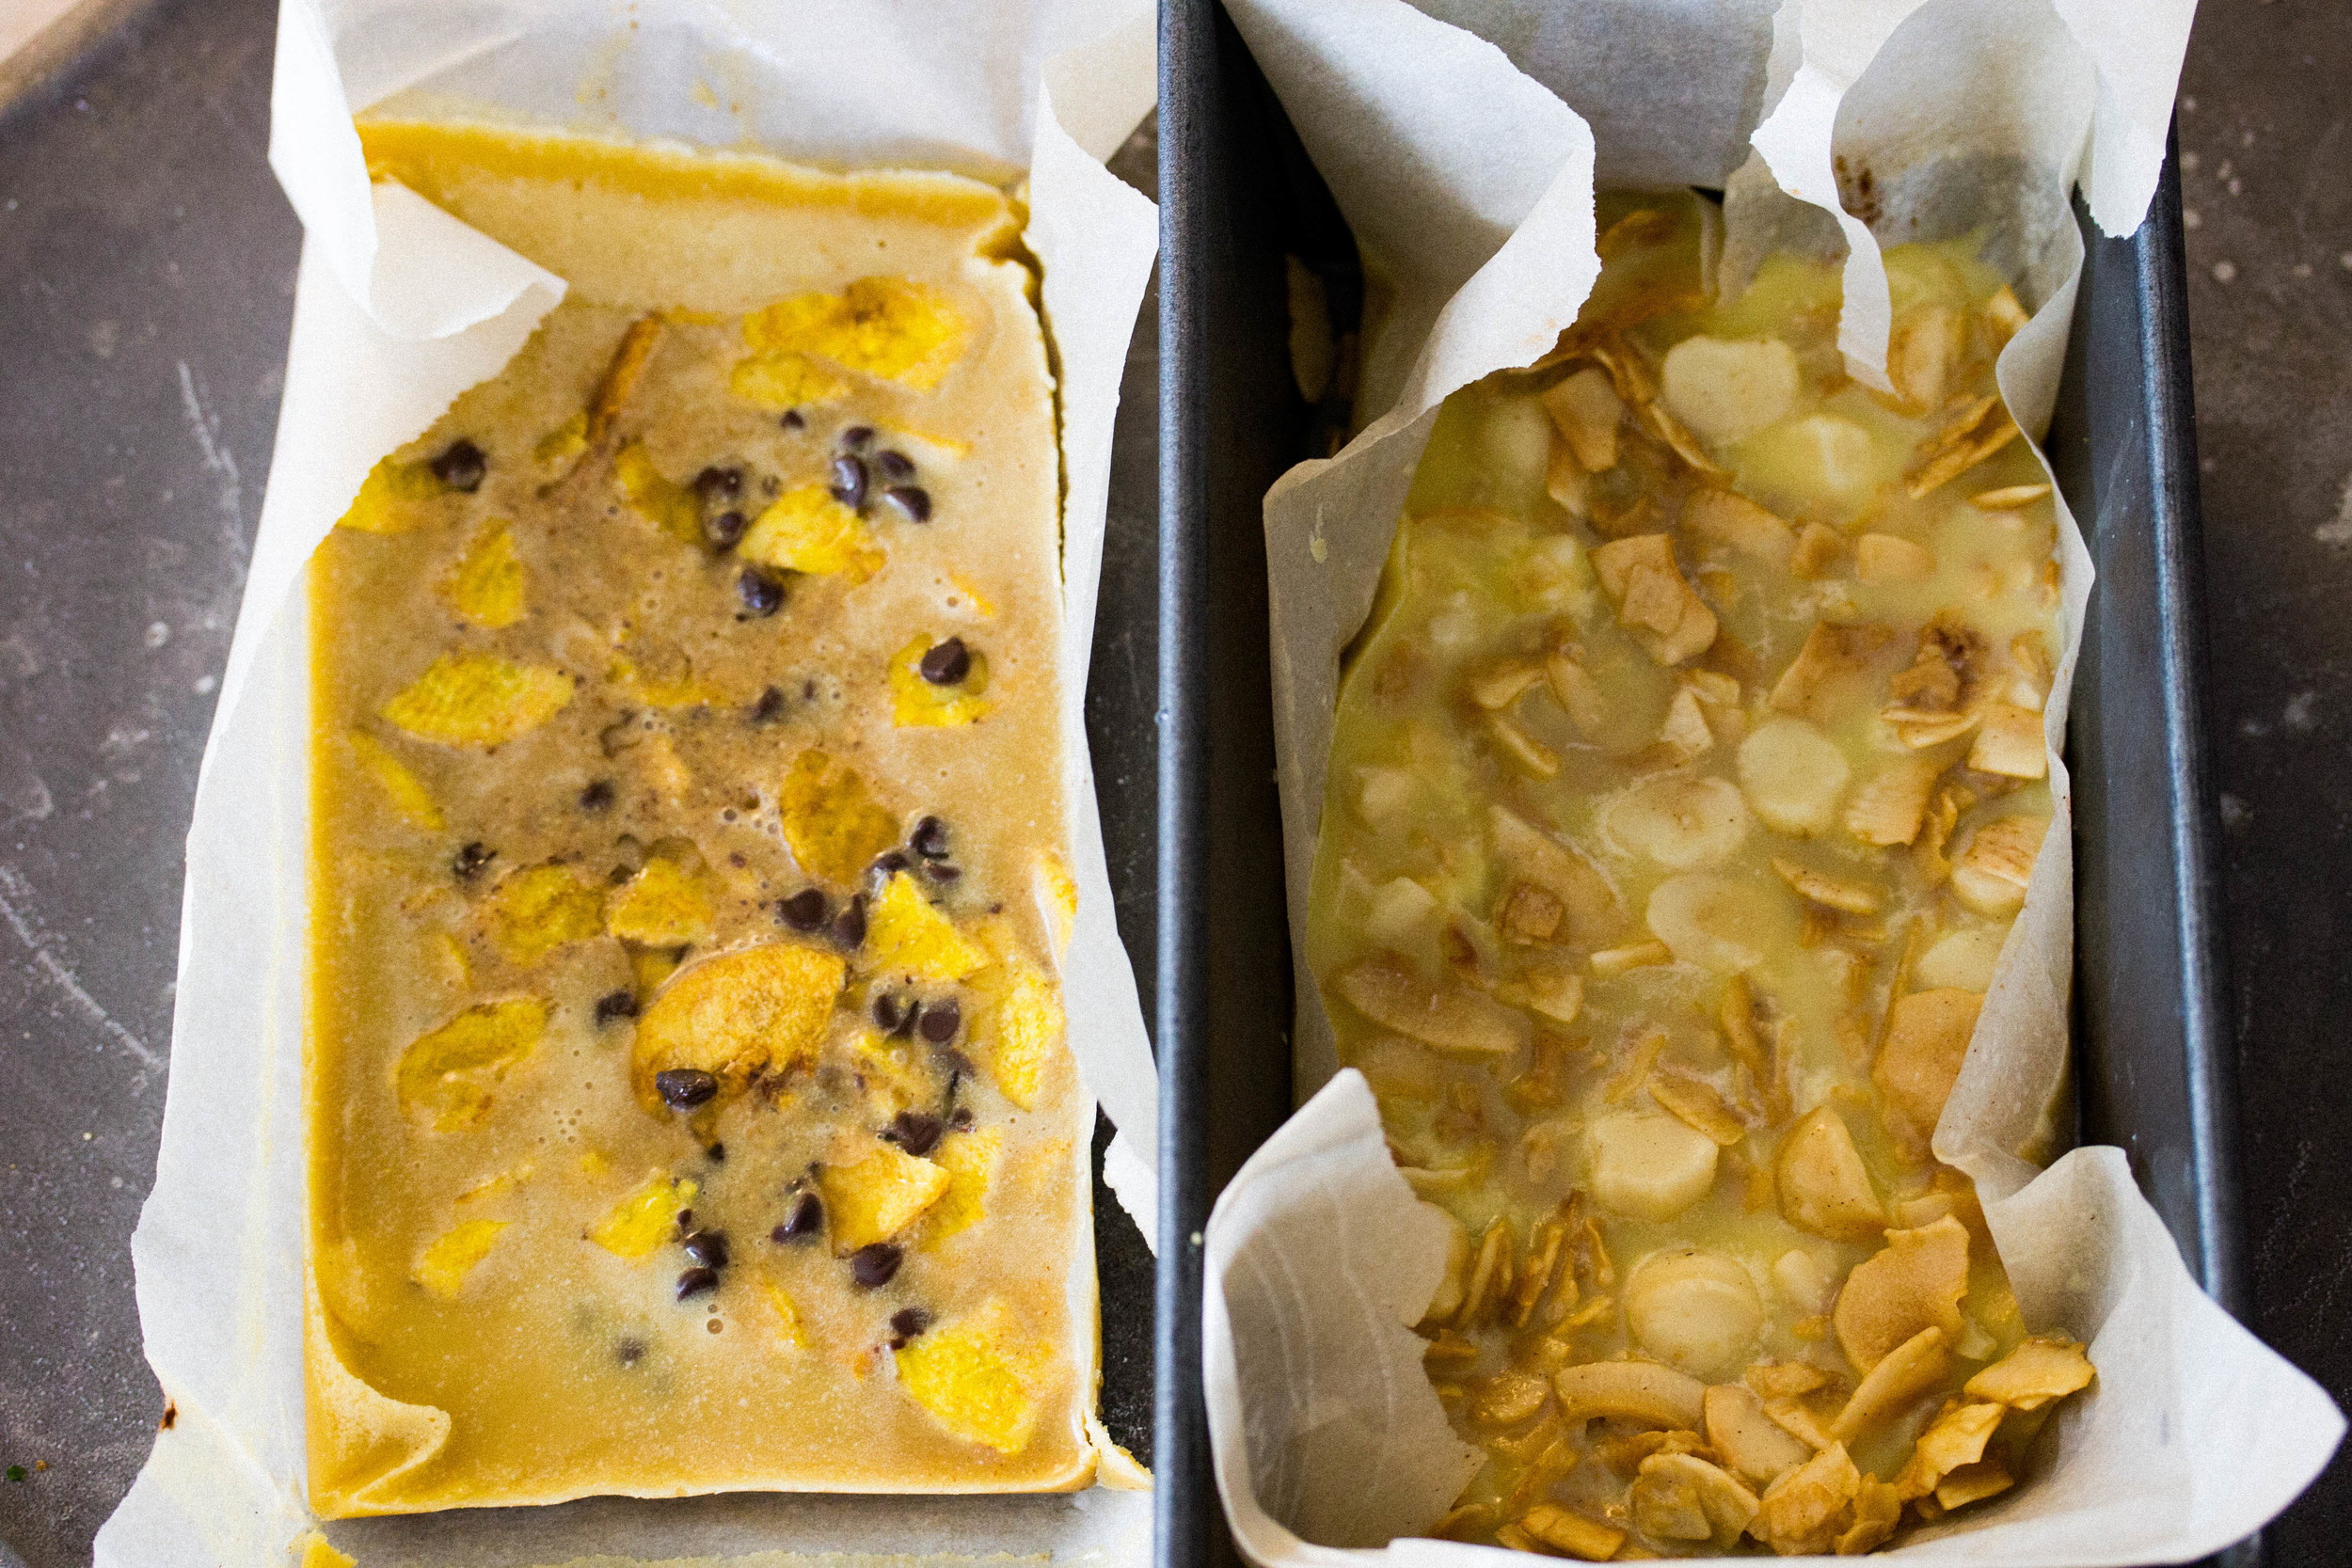 Pour melted butter and oil into loaf pan lined with parchment paper, then add toppings and freeze until well formed.